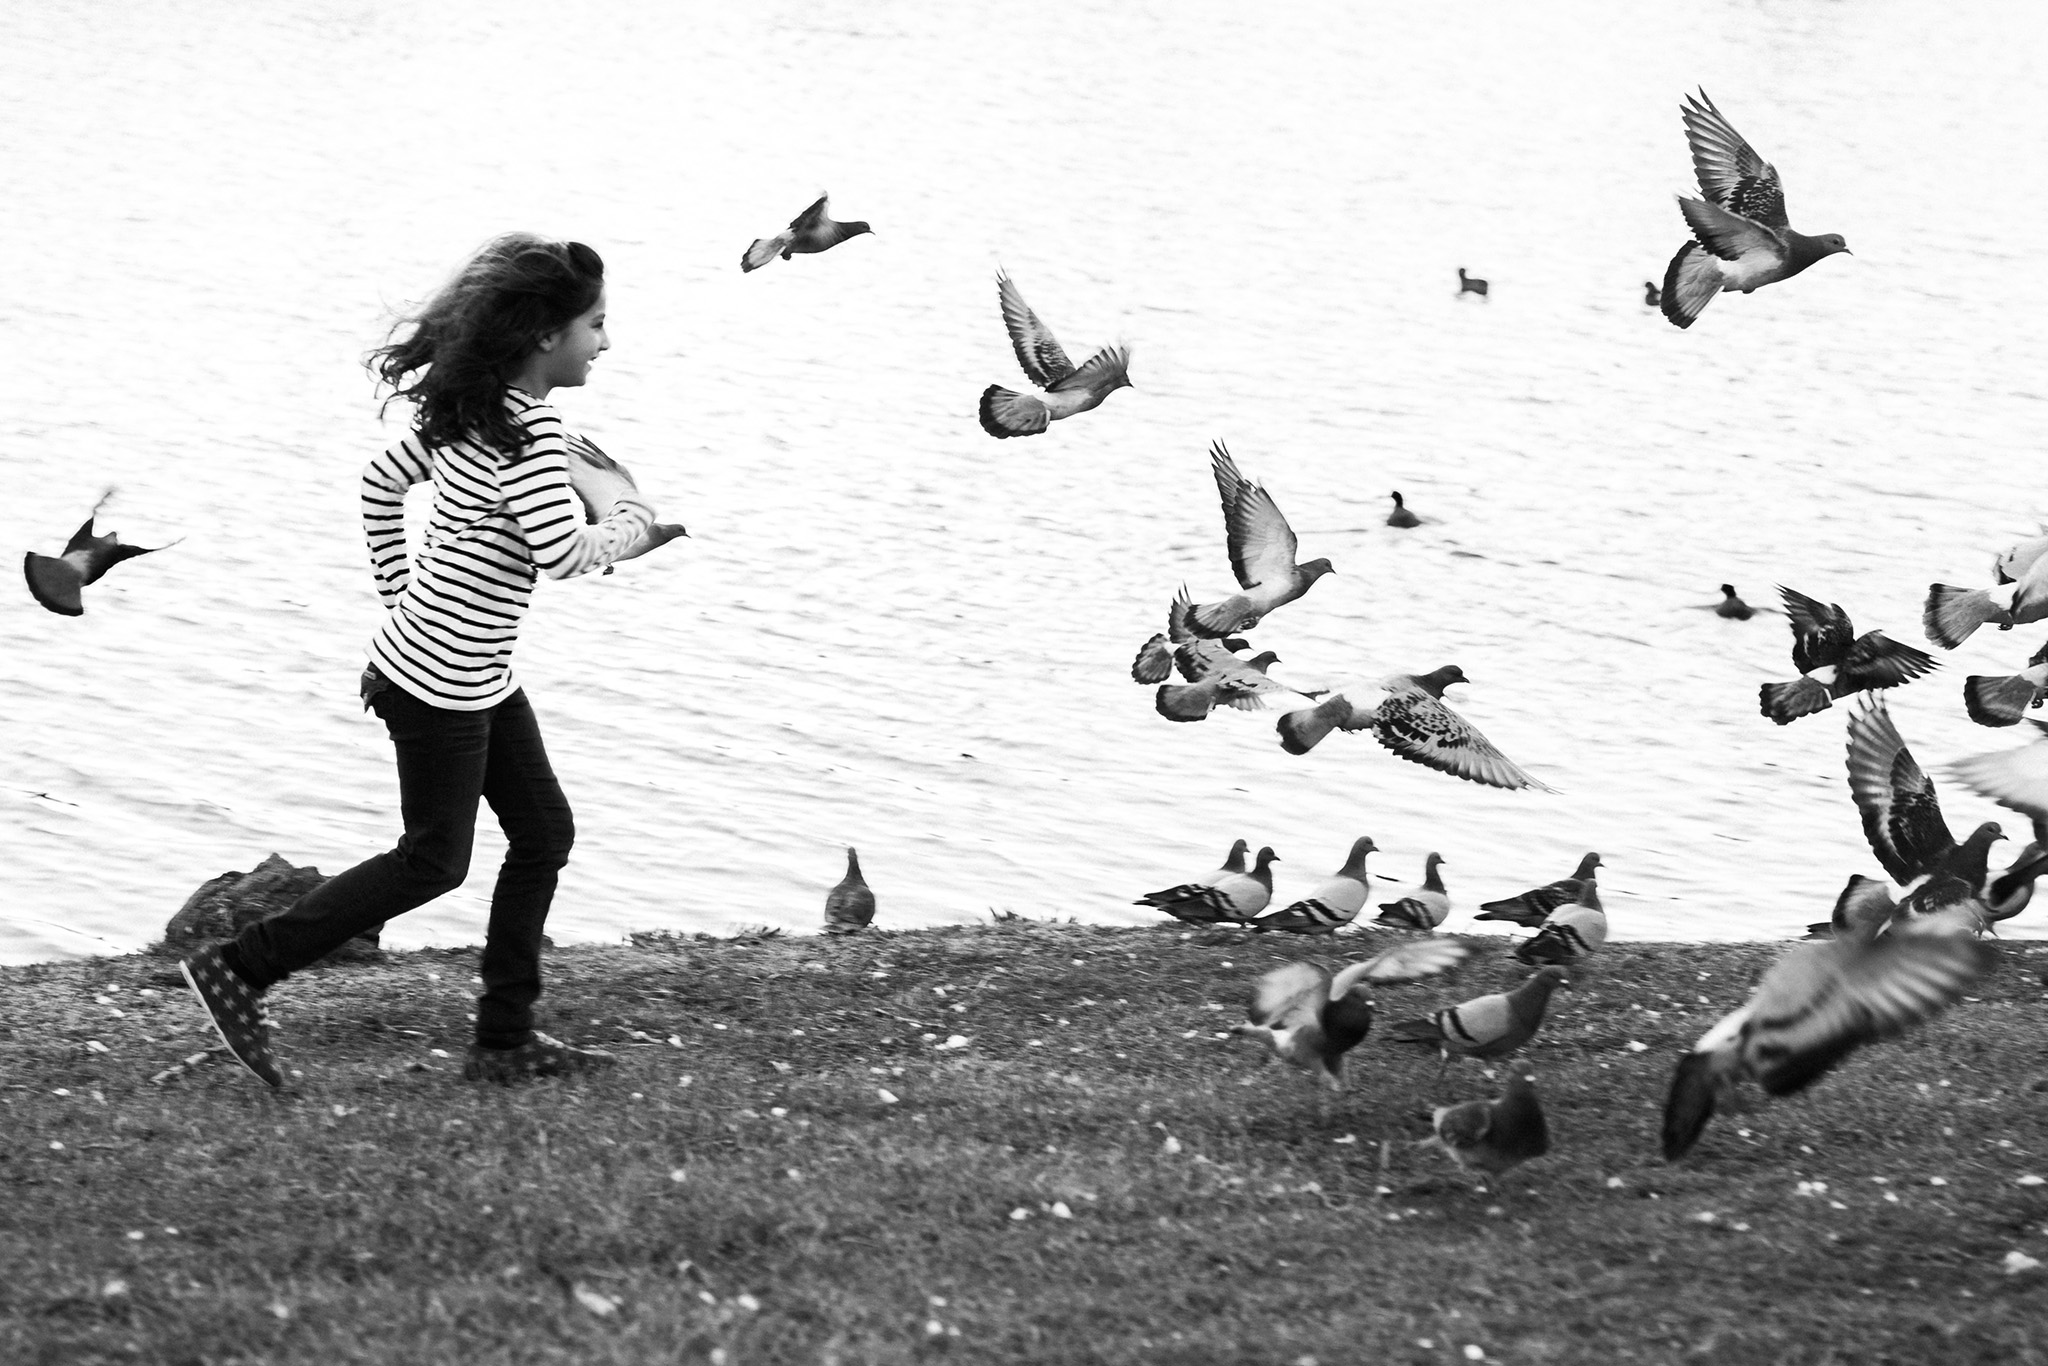 November 23: Reunited with my dear friends, and all Lucy wanted was a photo chasing the birds.